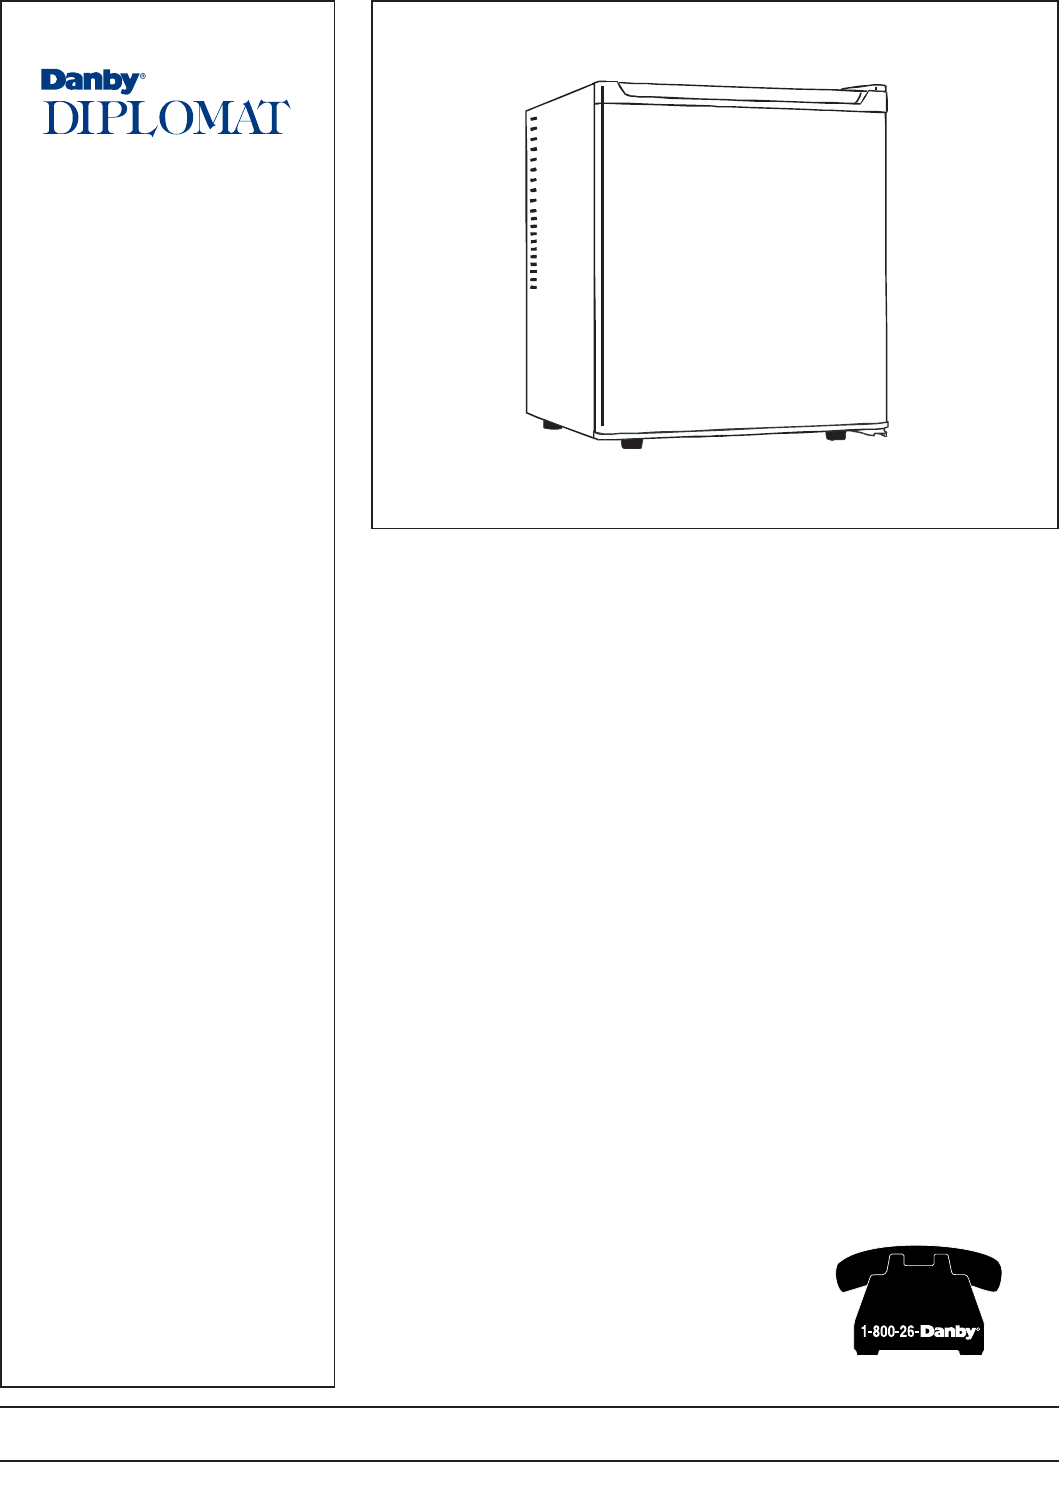 Danby refrigerator dar0488w user guide manualsonline owners manual cheapraybanclubmaster Images